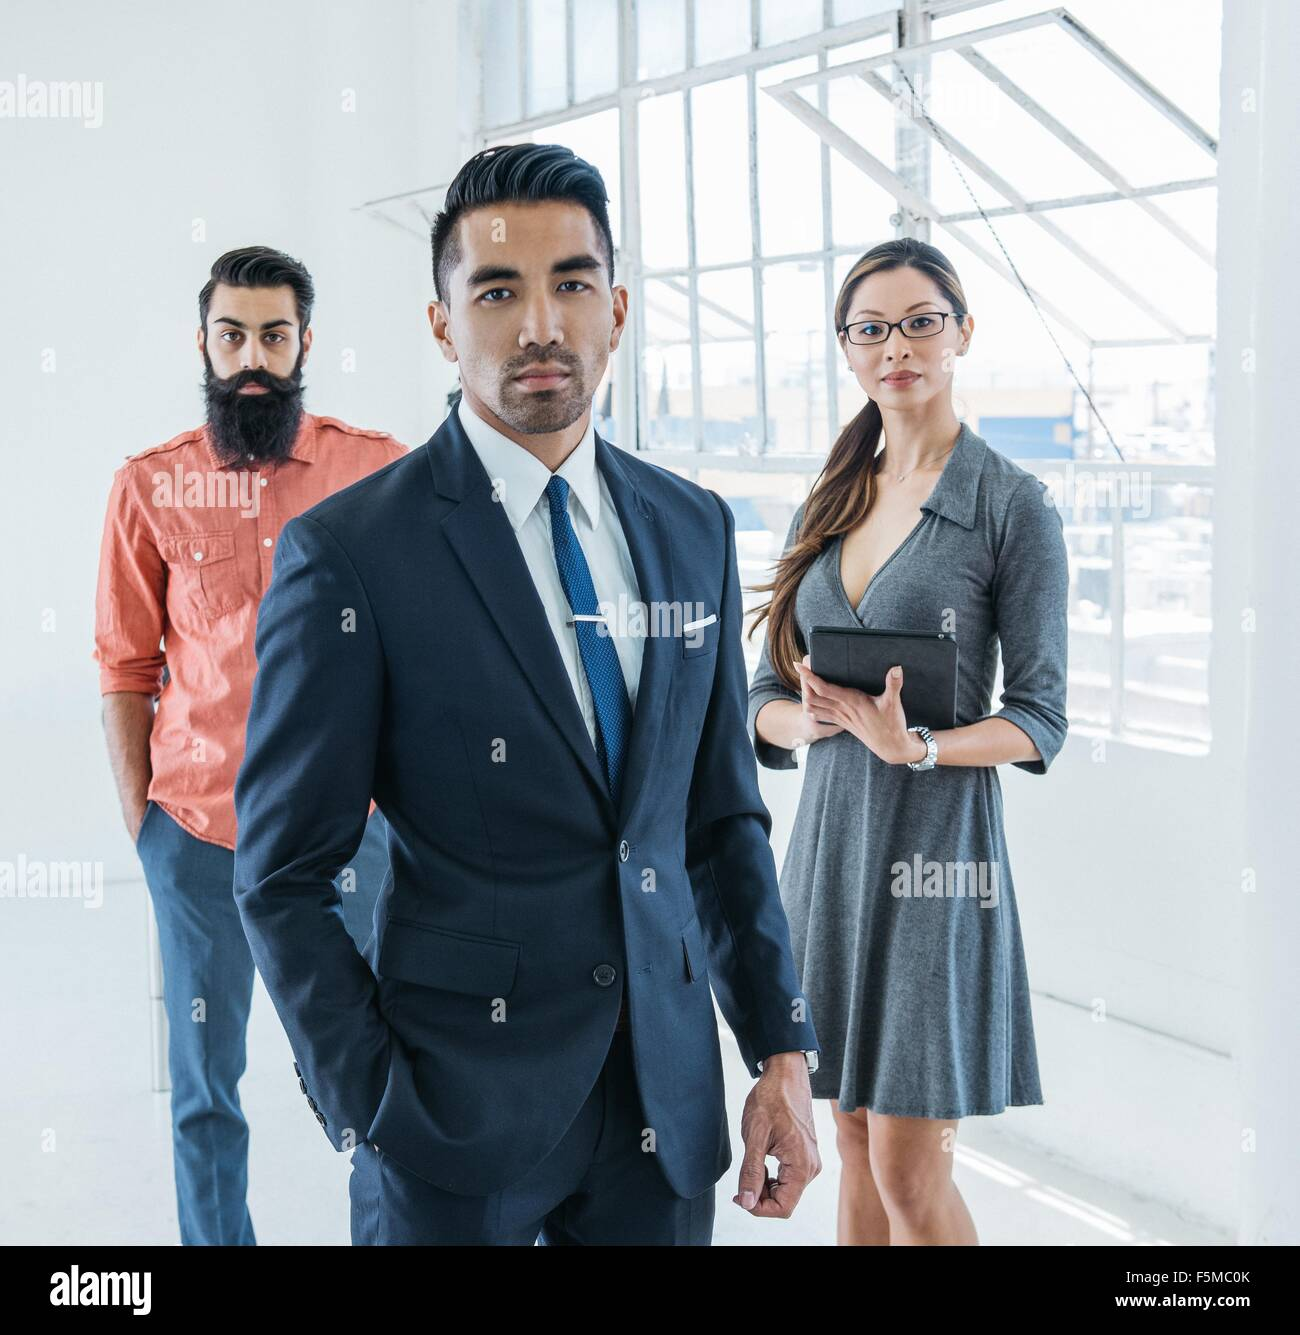 Portrait des gens d'affaires Photo Stock